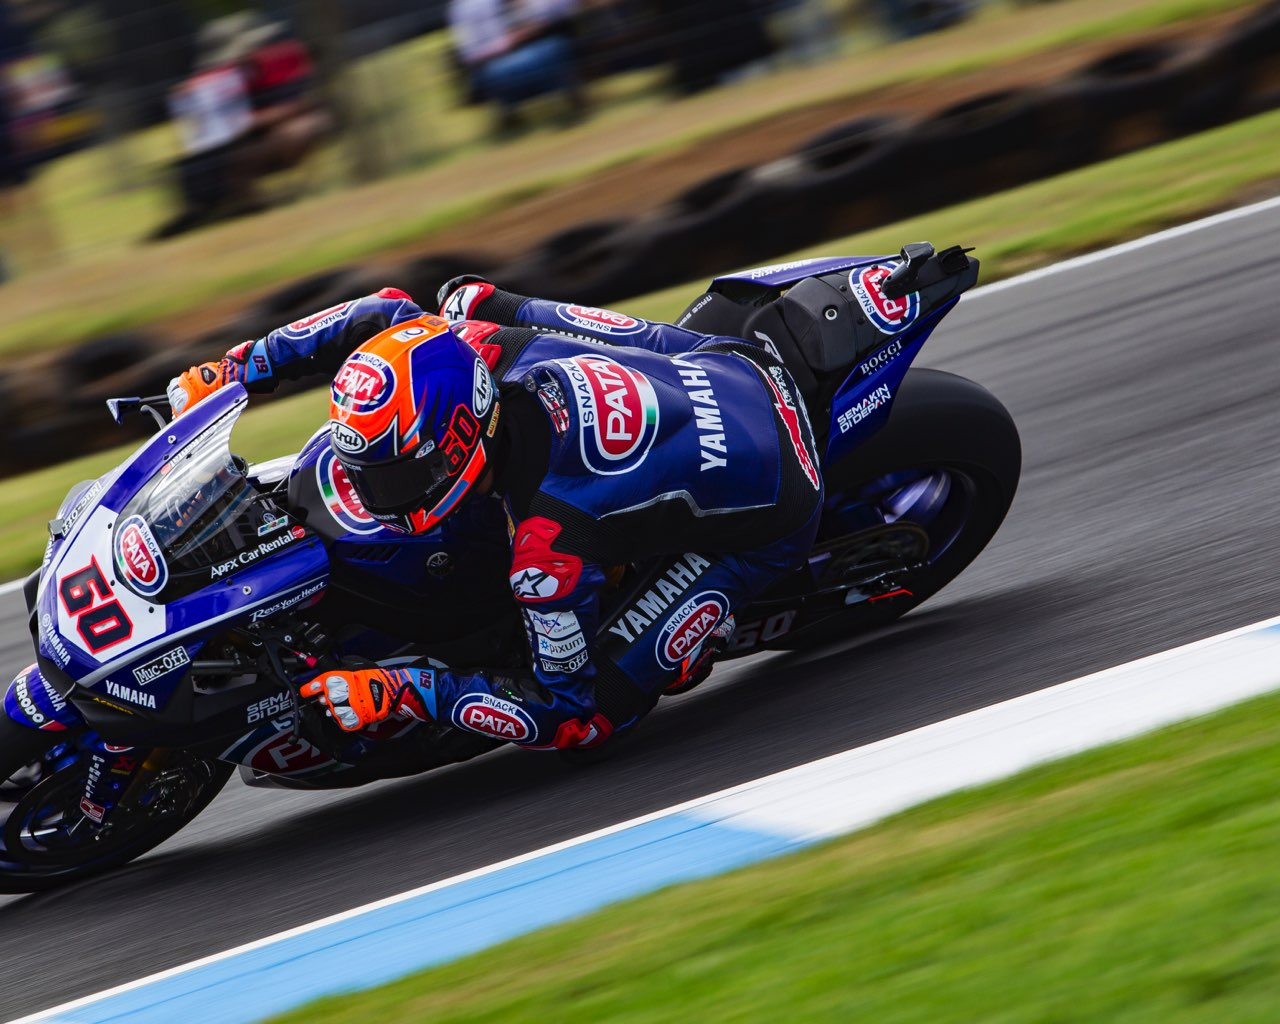 2018 Phillip Island | Michael van der Mark